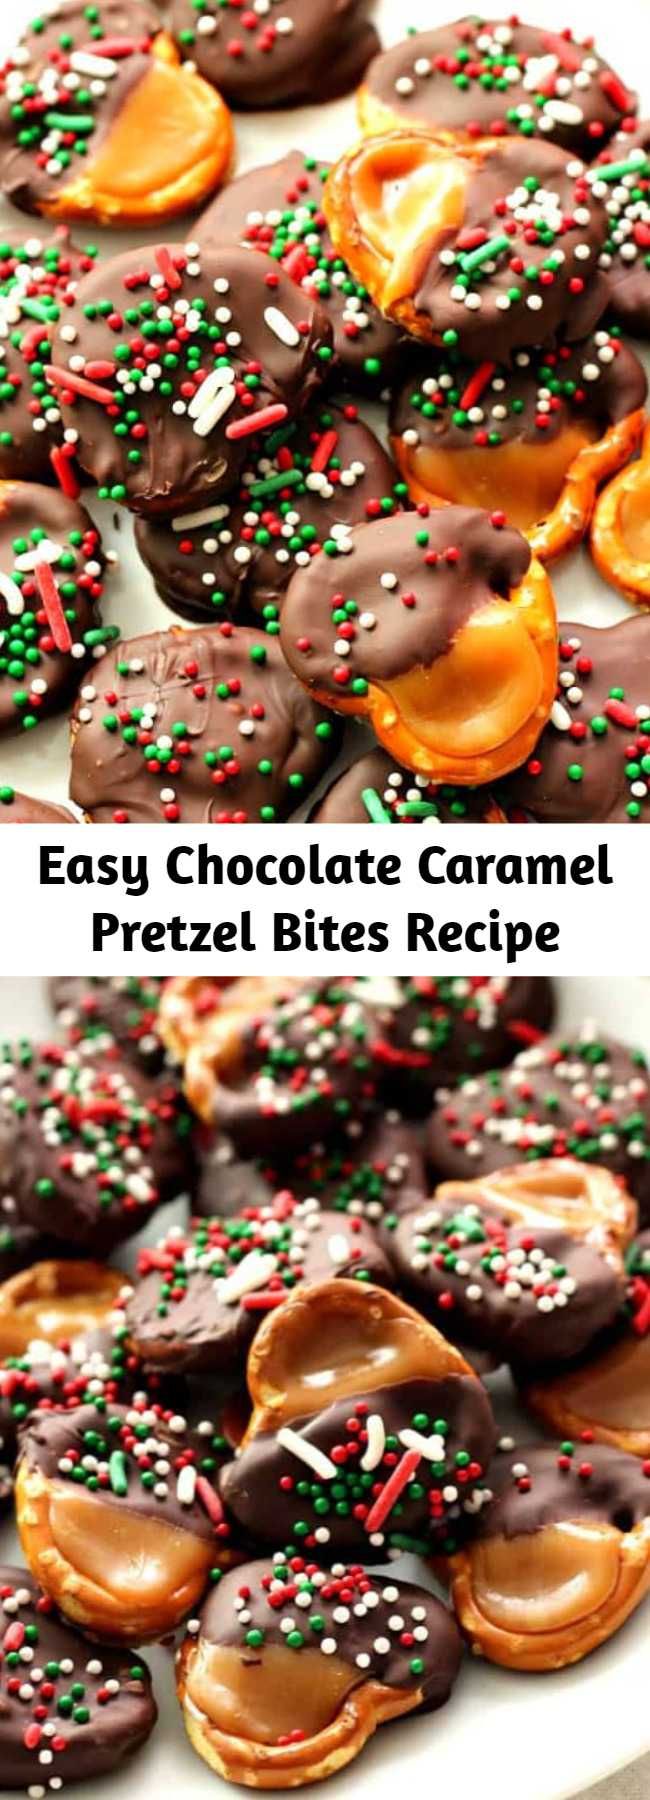 Easy Chocolate Caramel Pretzel Bites Recipe - Super easy candy idea for the holidays! Great gift for chocolate and caramel lovers!